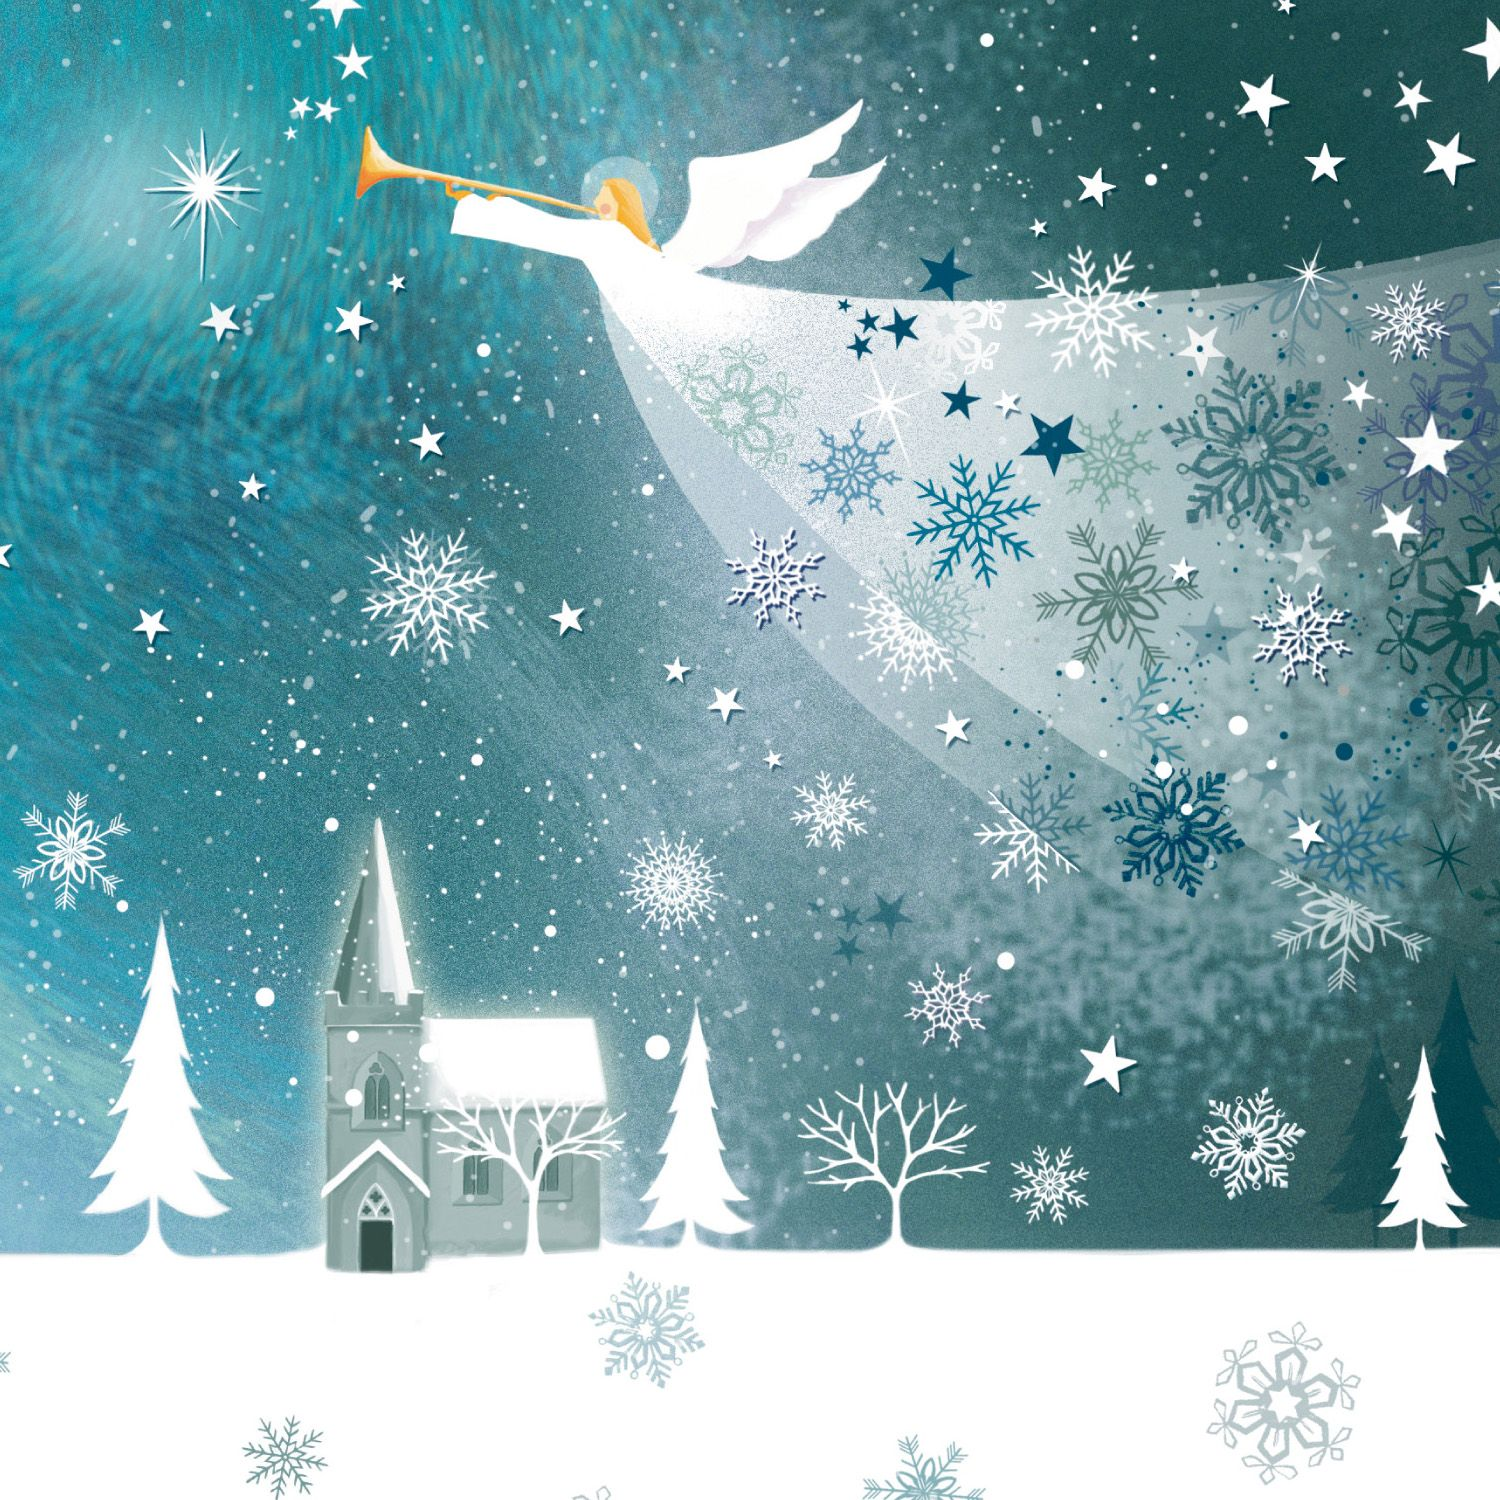 Christmas Card Photo Angel Christmas Cards 10 Beautiful Cards With Festive Angel